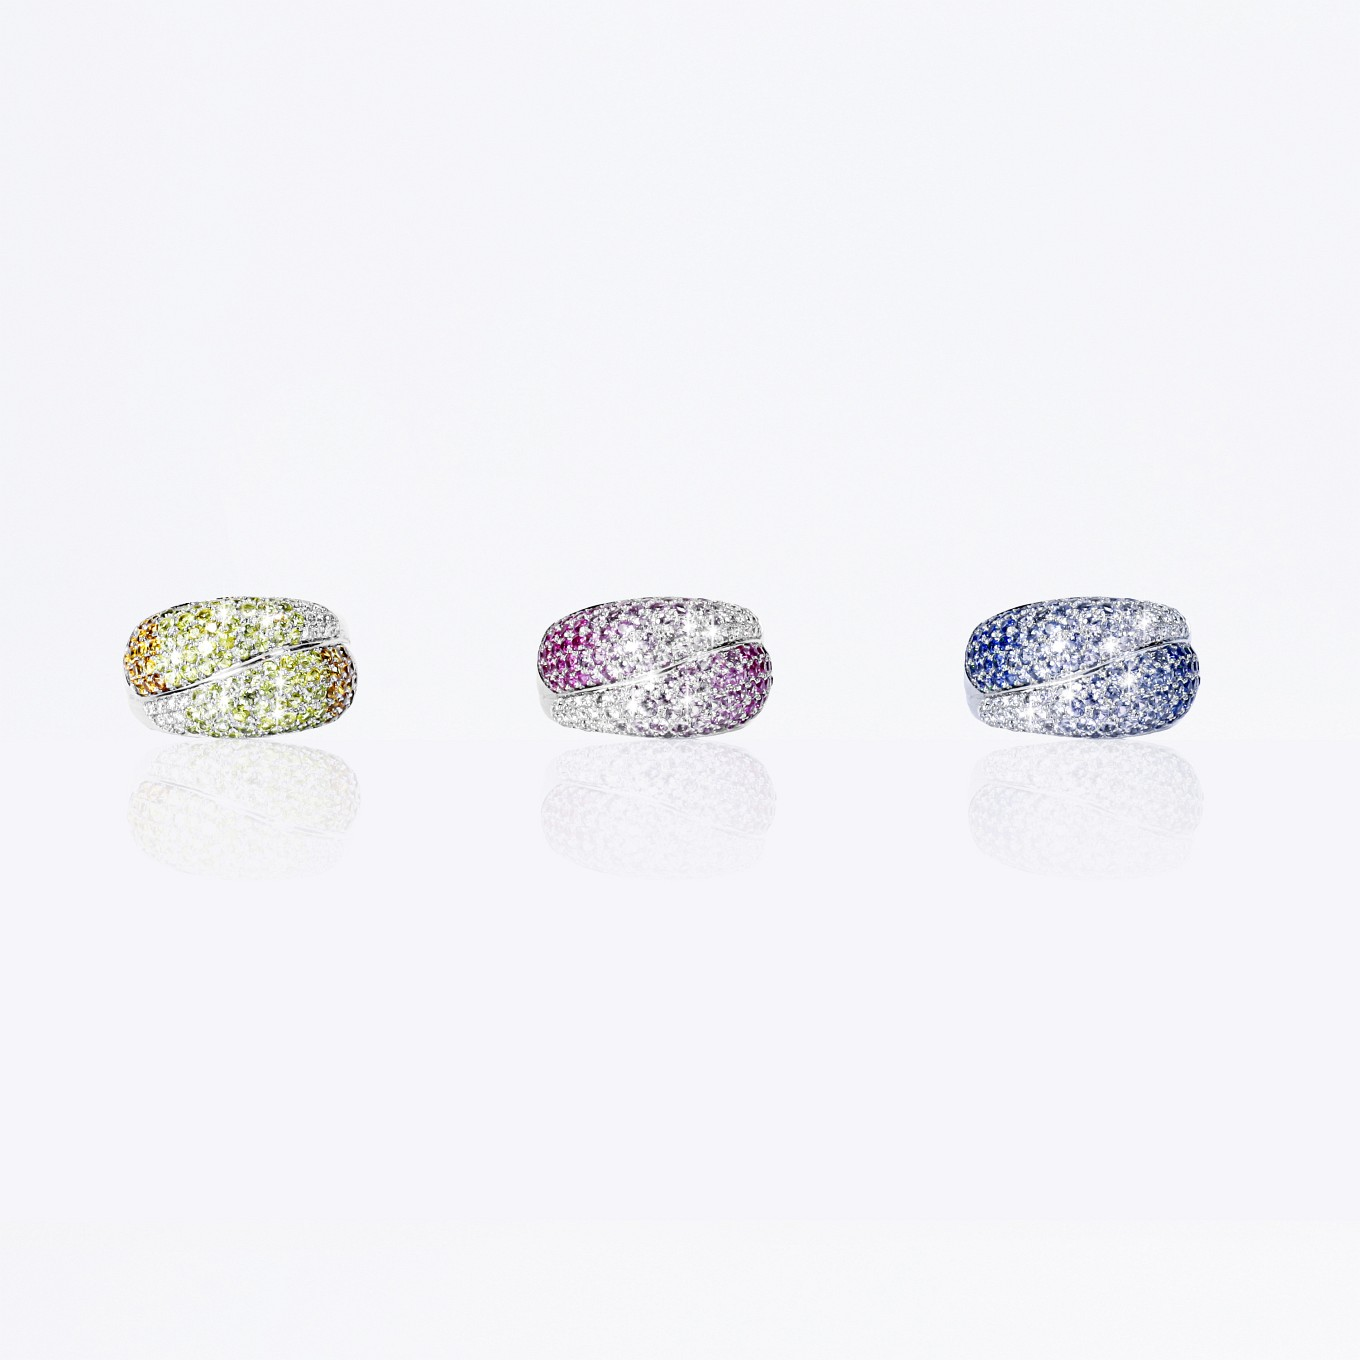 BLUE, YELLOW & PINK SAPPHIRE & DIAMOND PAVE RINGS IN WHITE GOLD